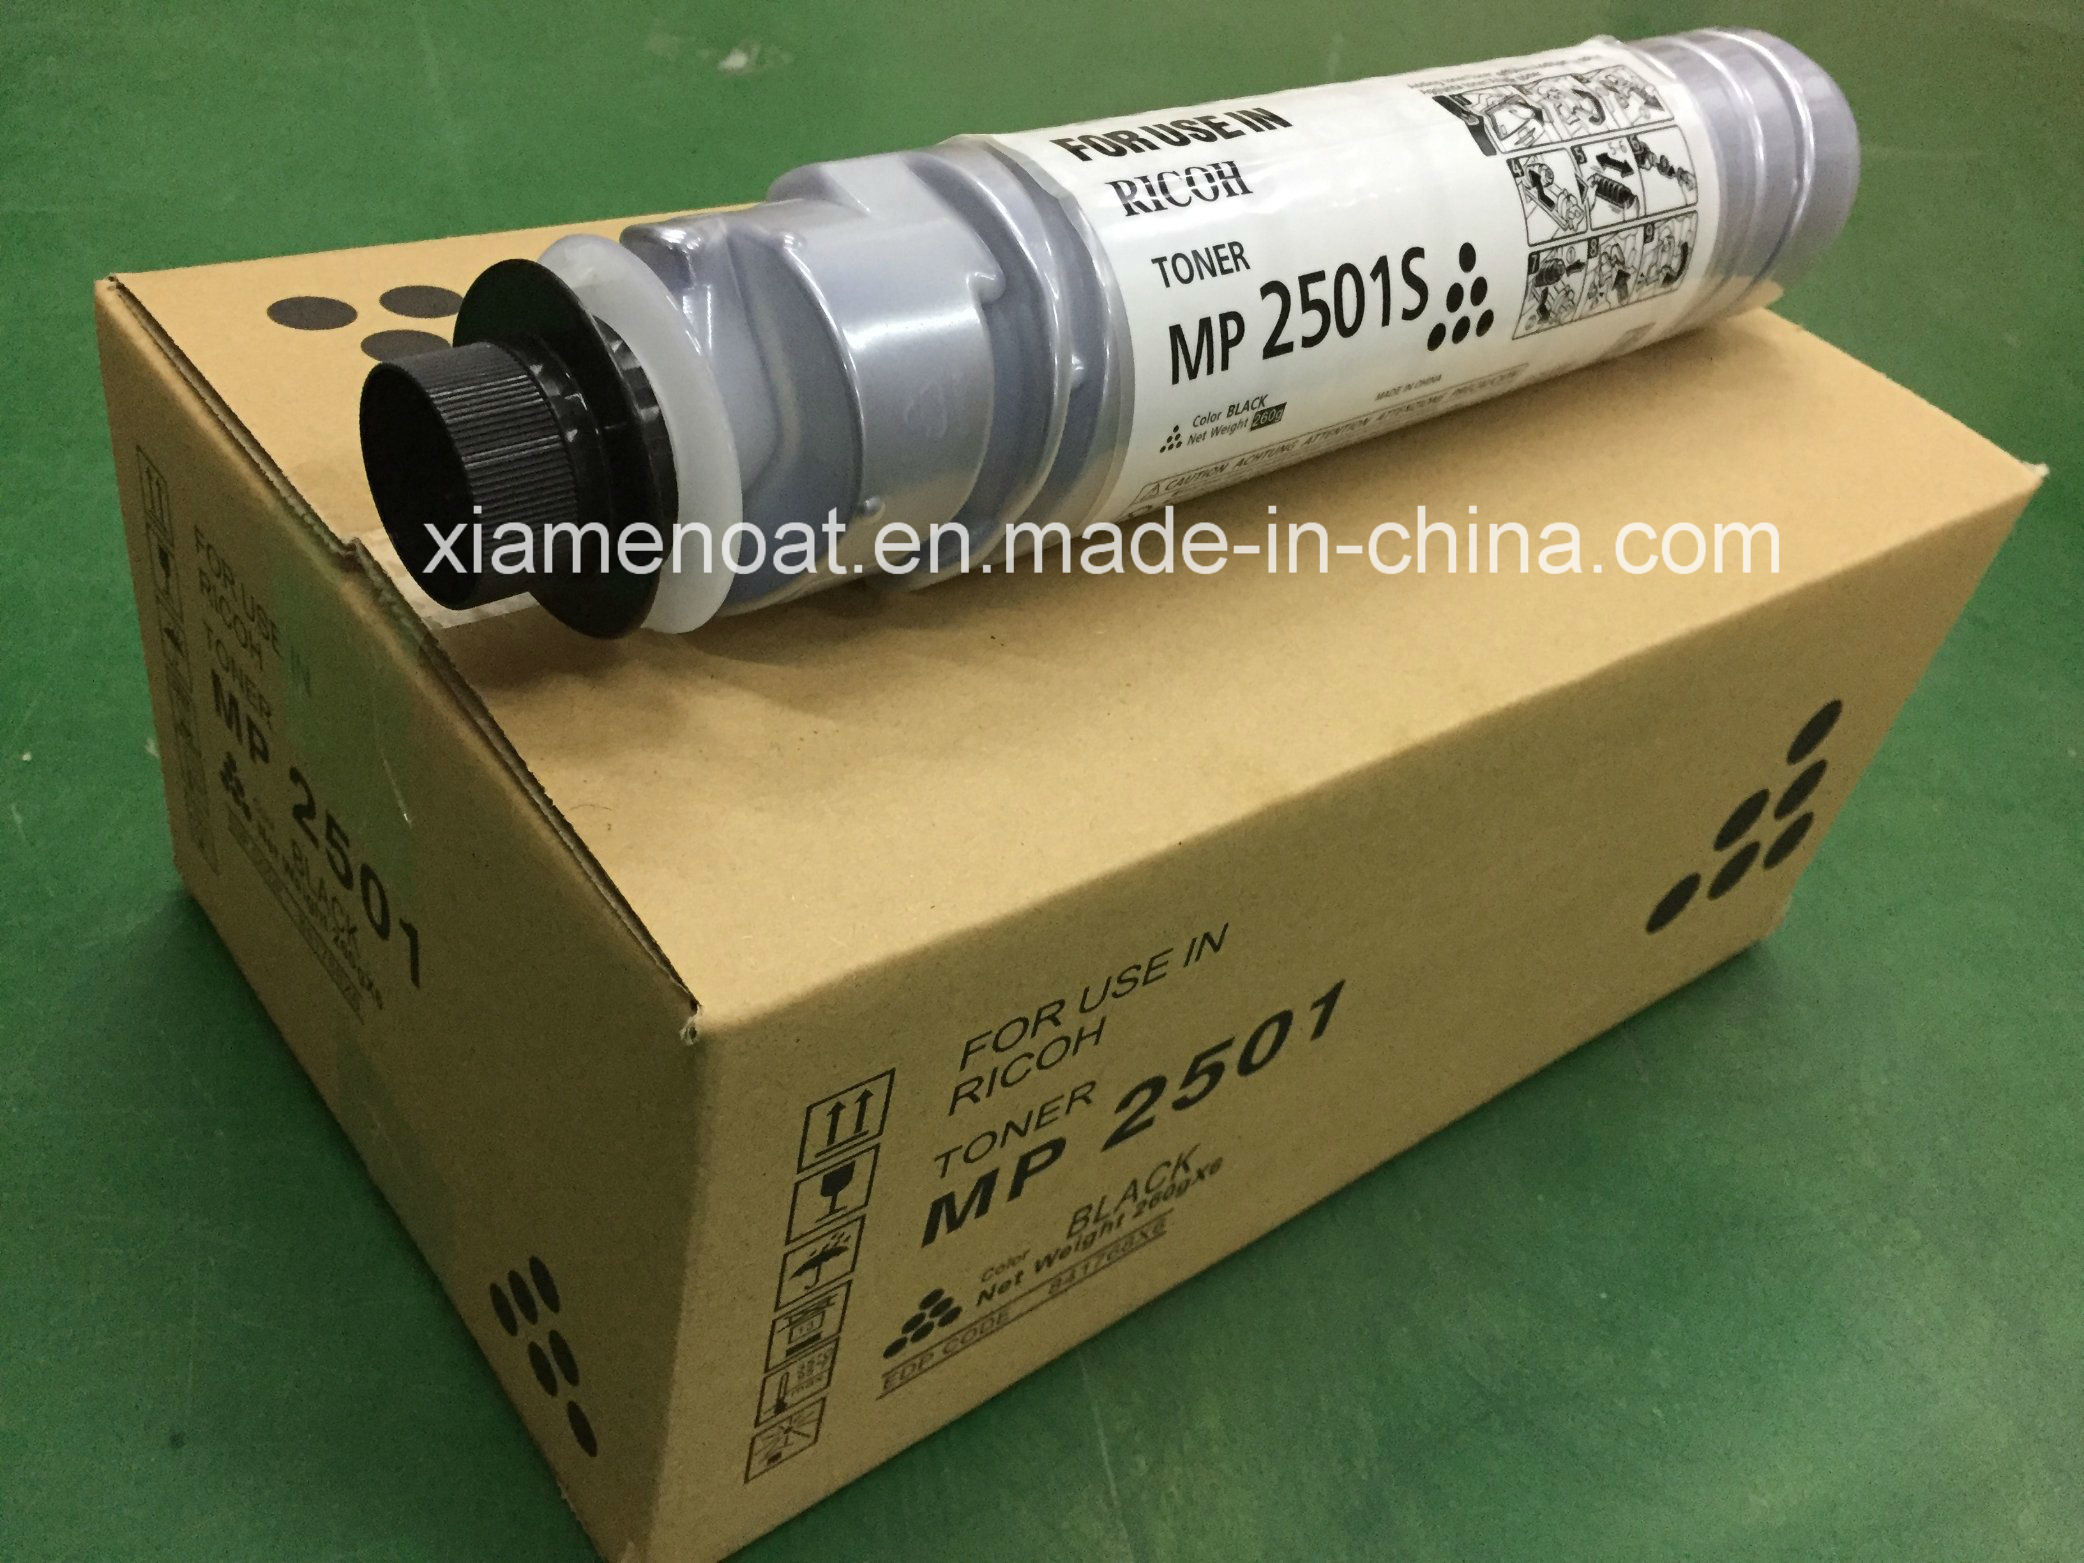 MP2501d Copier Toner for Use in Ricoh Aficio 1813/2501/2001 pictures & photos